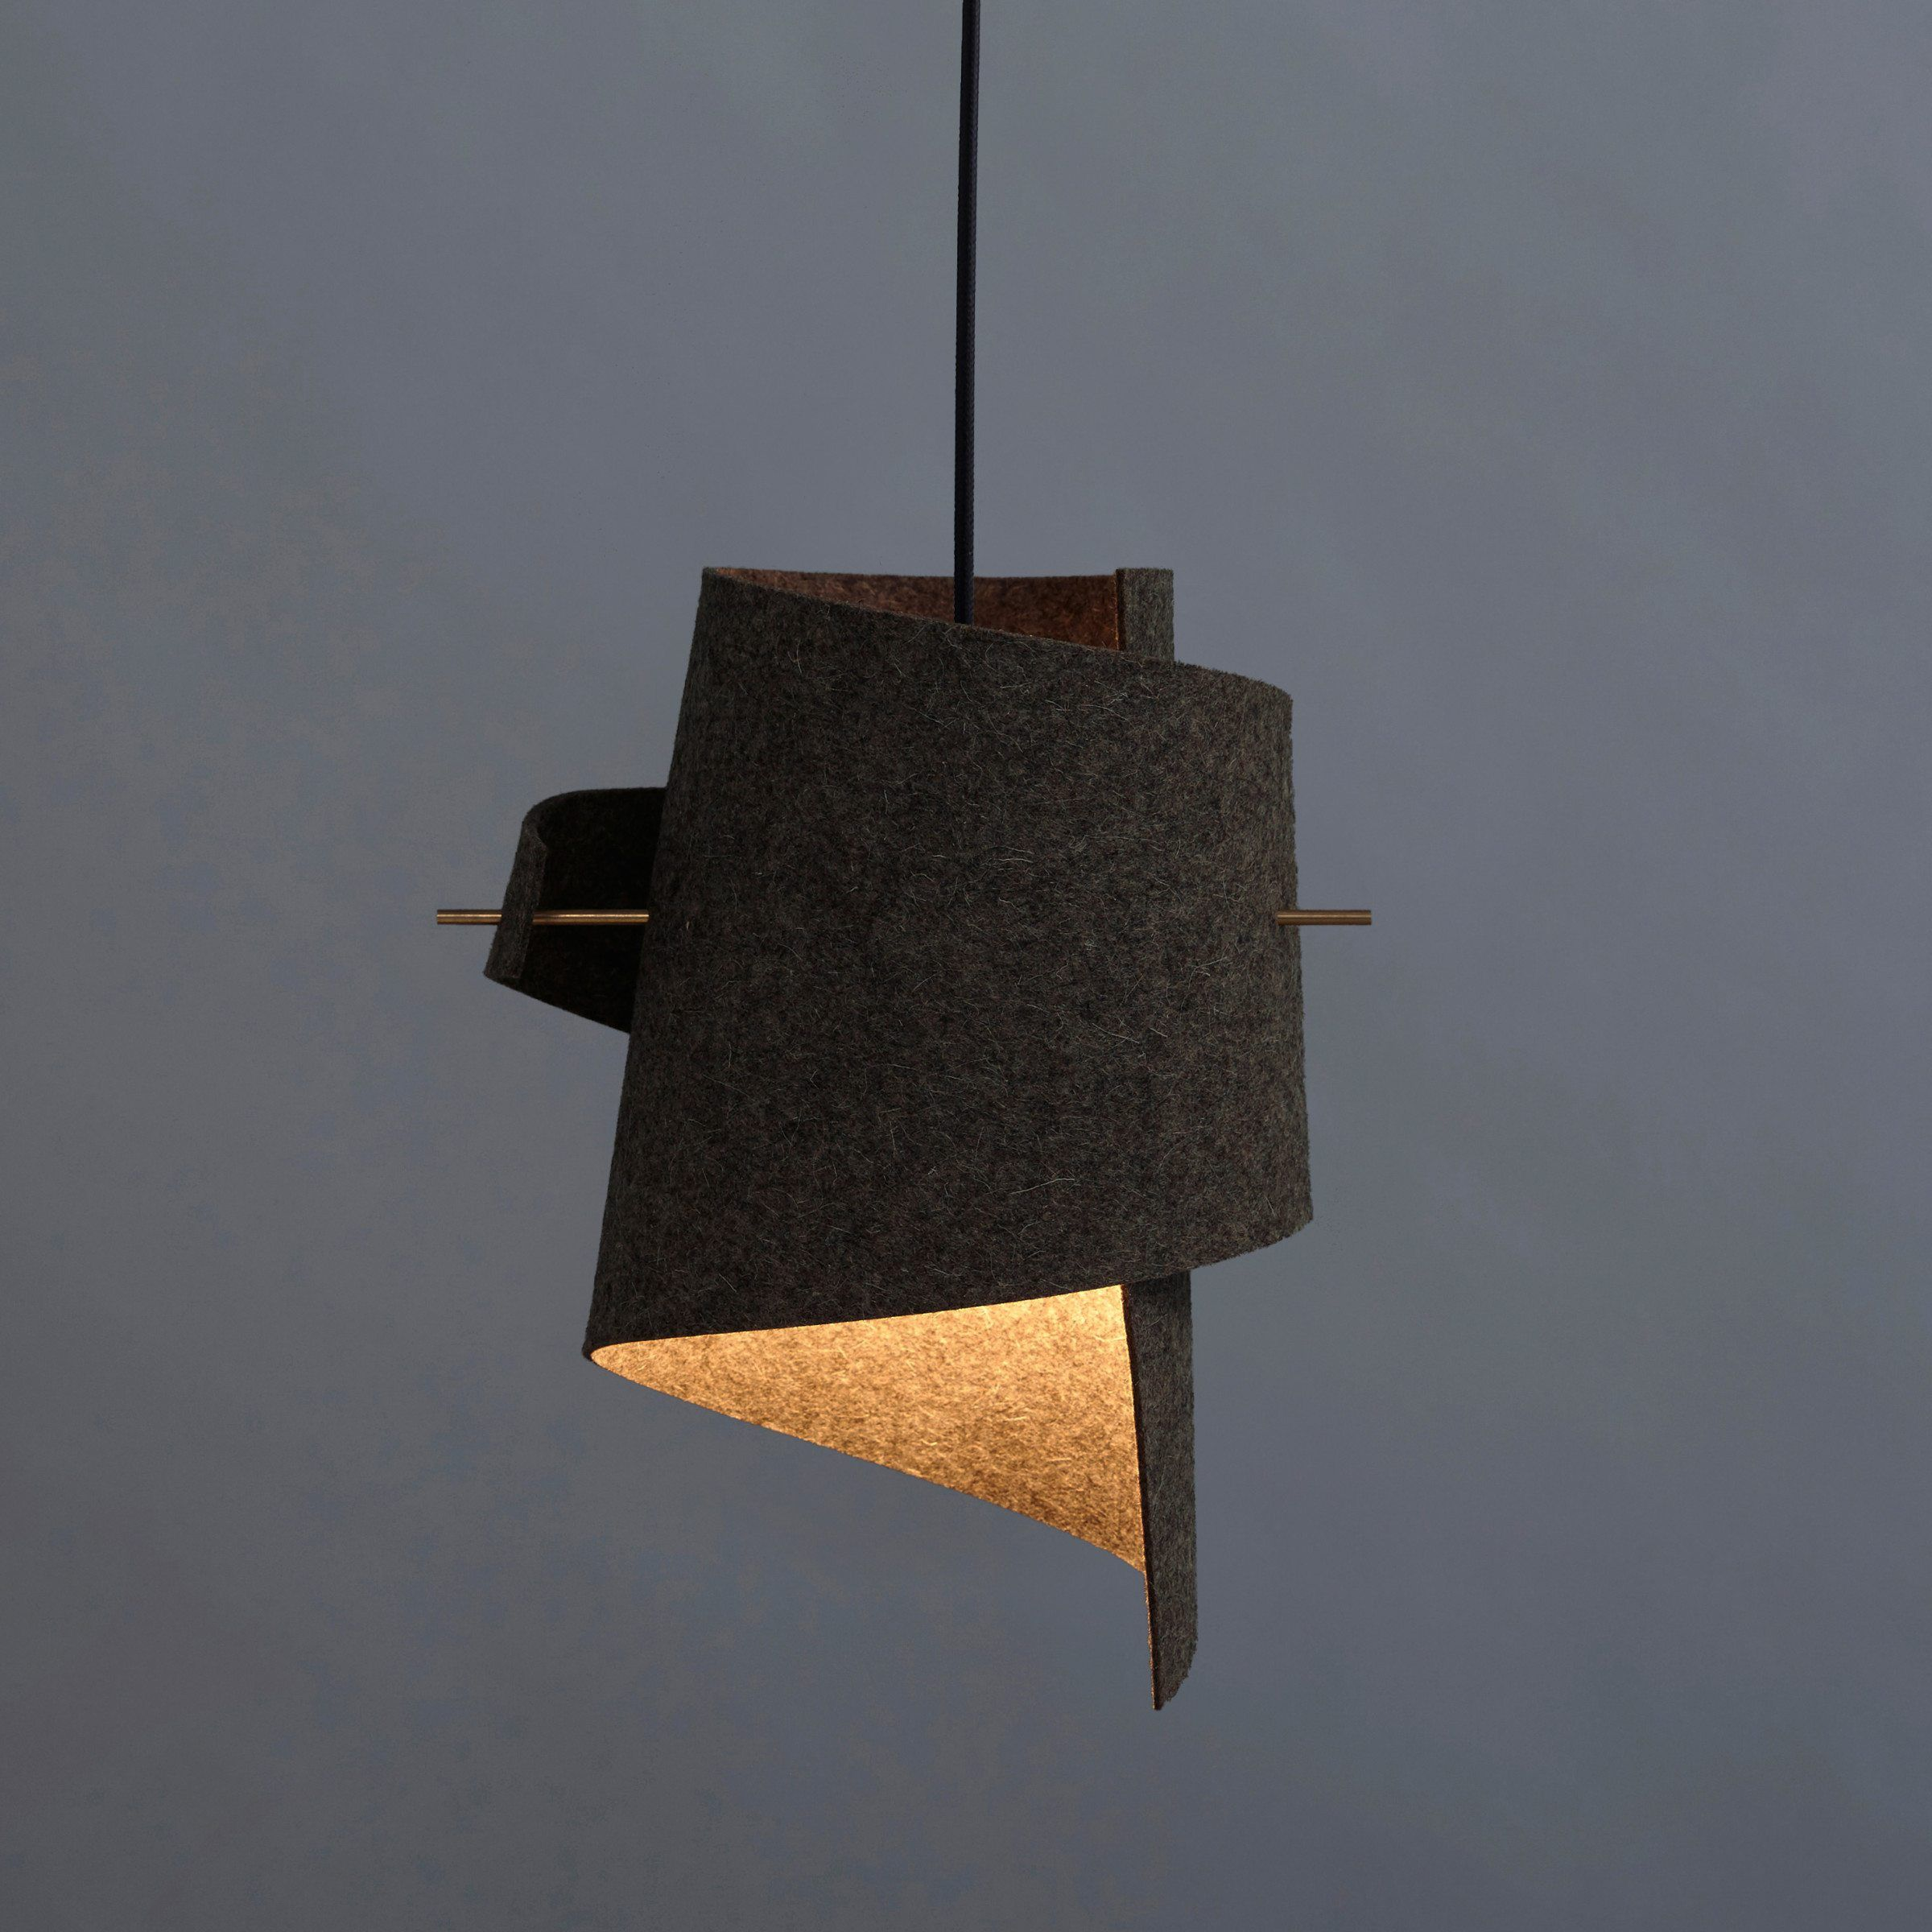 Wool felt lampshade in greybrown brass rods 4m black fabric wire wool felt lampshade in greybrown brass rods 4m black fabric wire cork lampshade aloadofball Choice Image